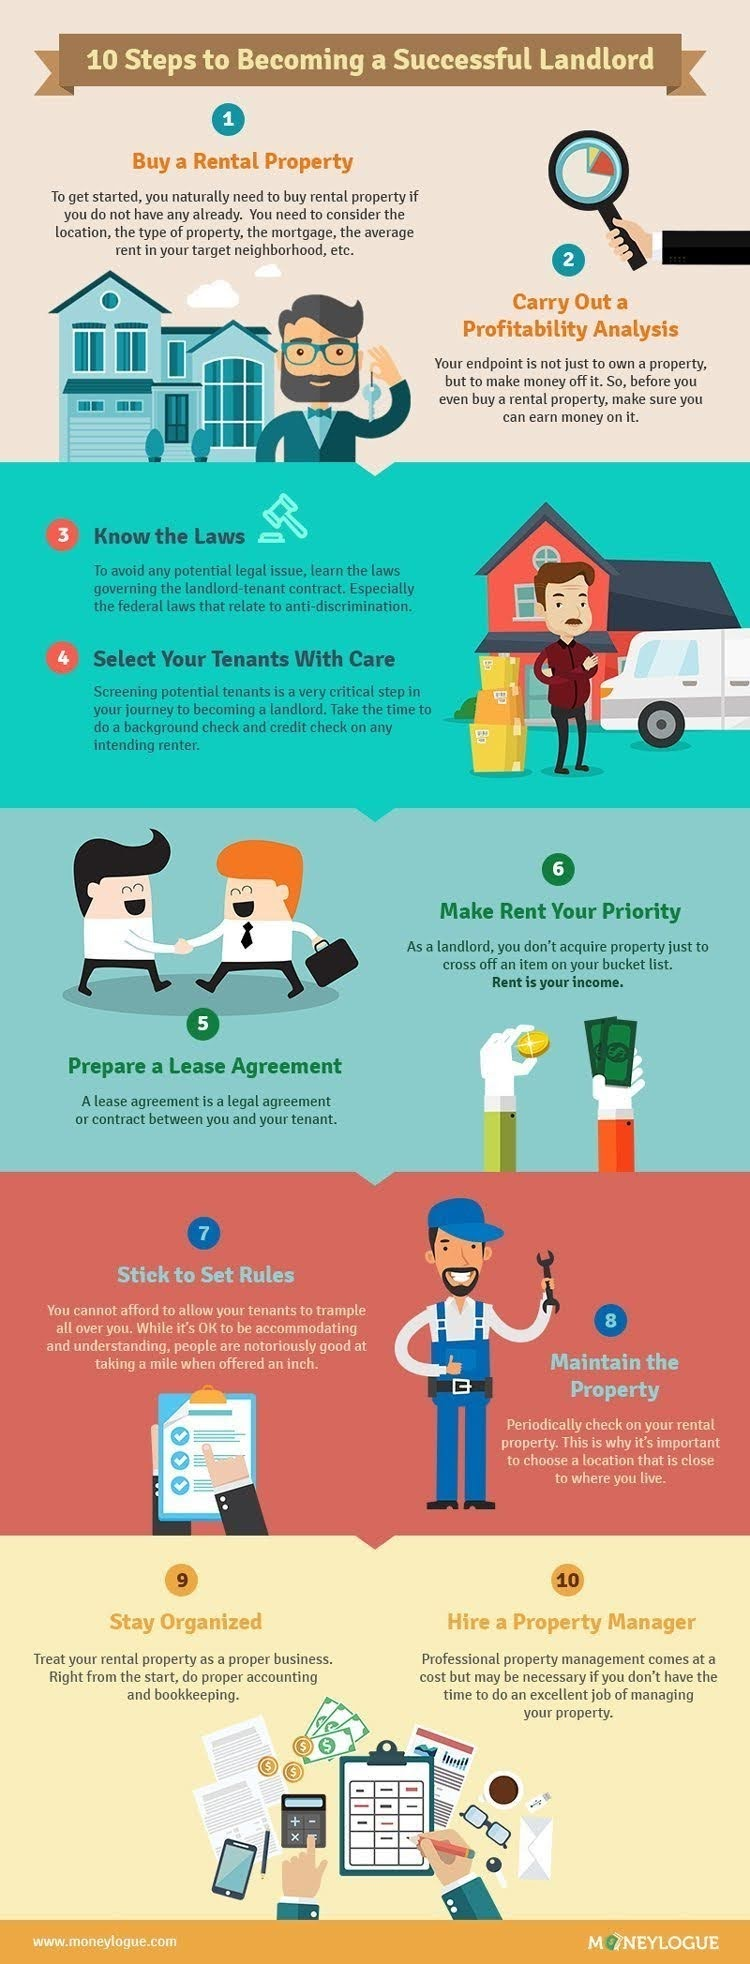 How To Become A Landlord #infographic